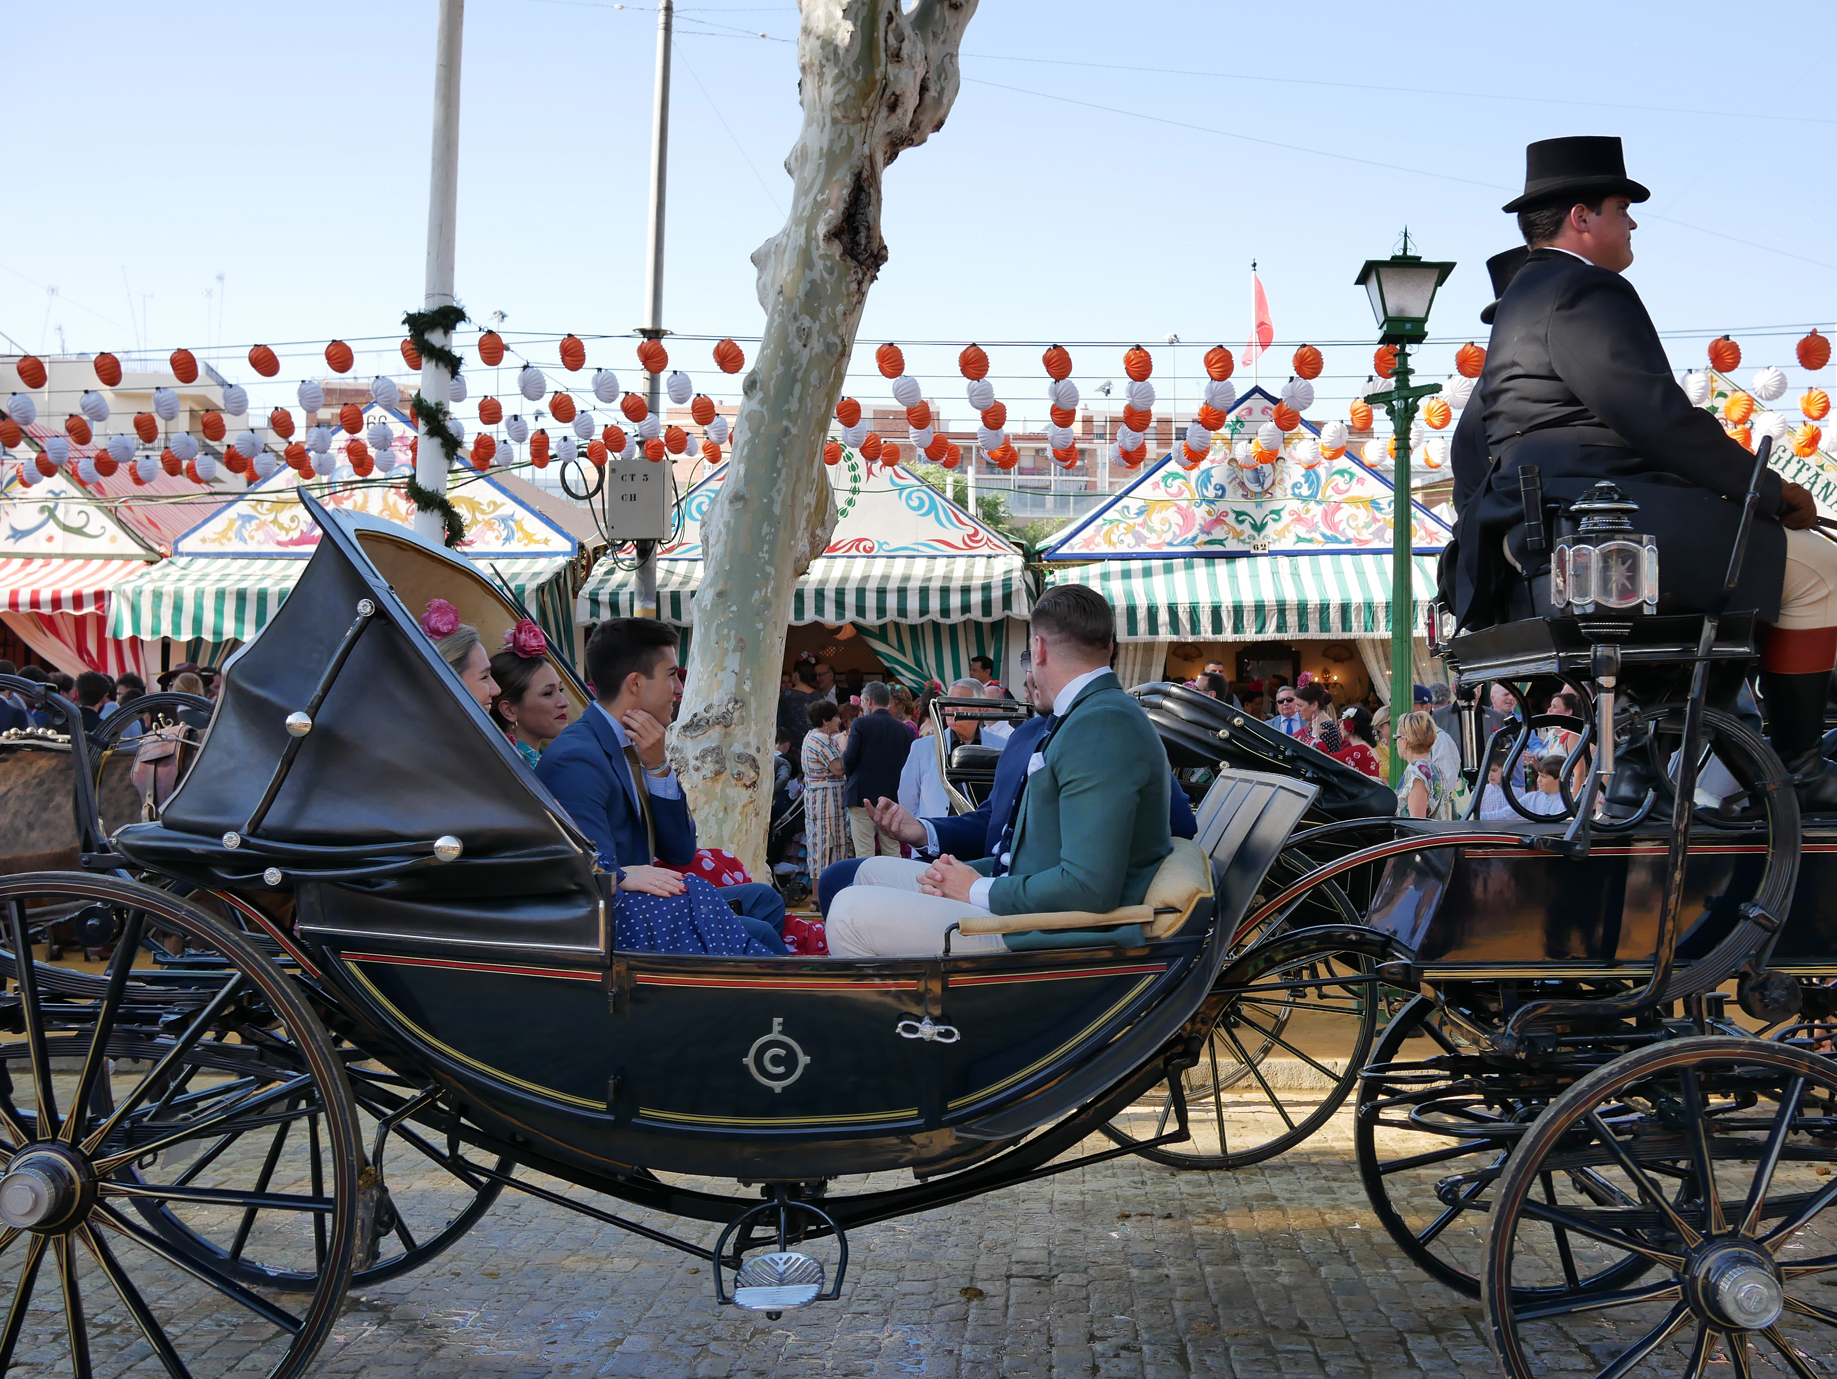 The fairgrounds themselves are filled with carriages. I thought it was great that this is really a living tradition - young people take part just as enthusiastically as older folk.